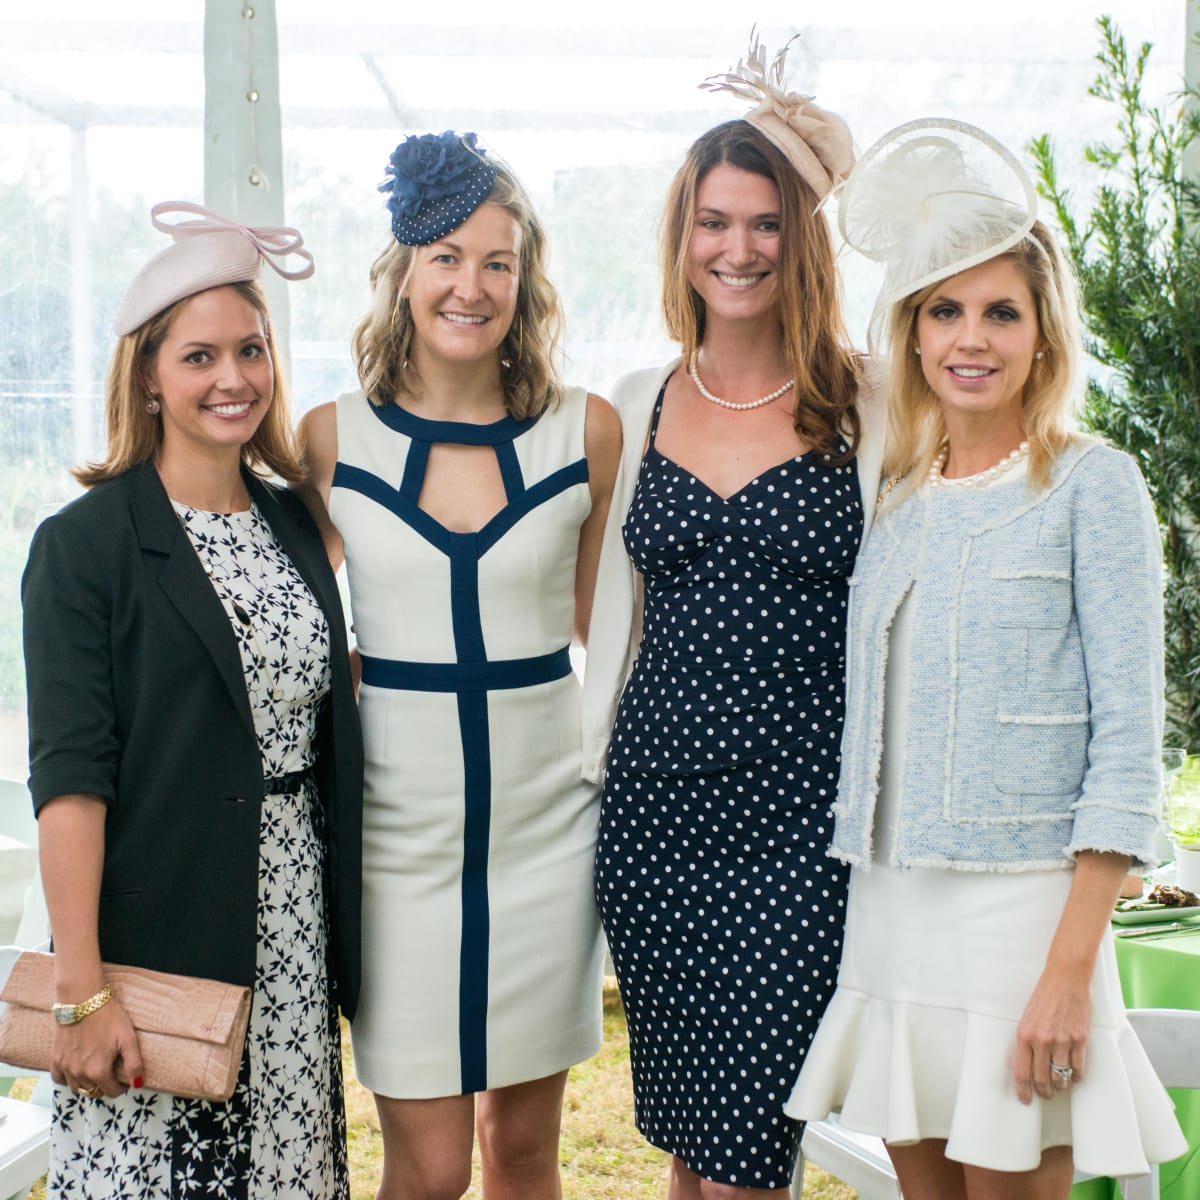 Hats in the Park, March 2016,Linsey Looke, Melissa Tuckerman, Brittany O'Brien, Meredith Monrad